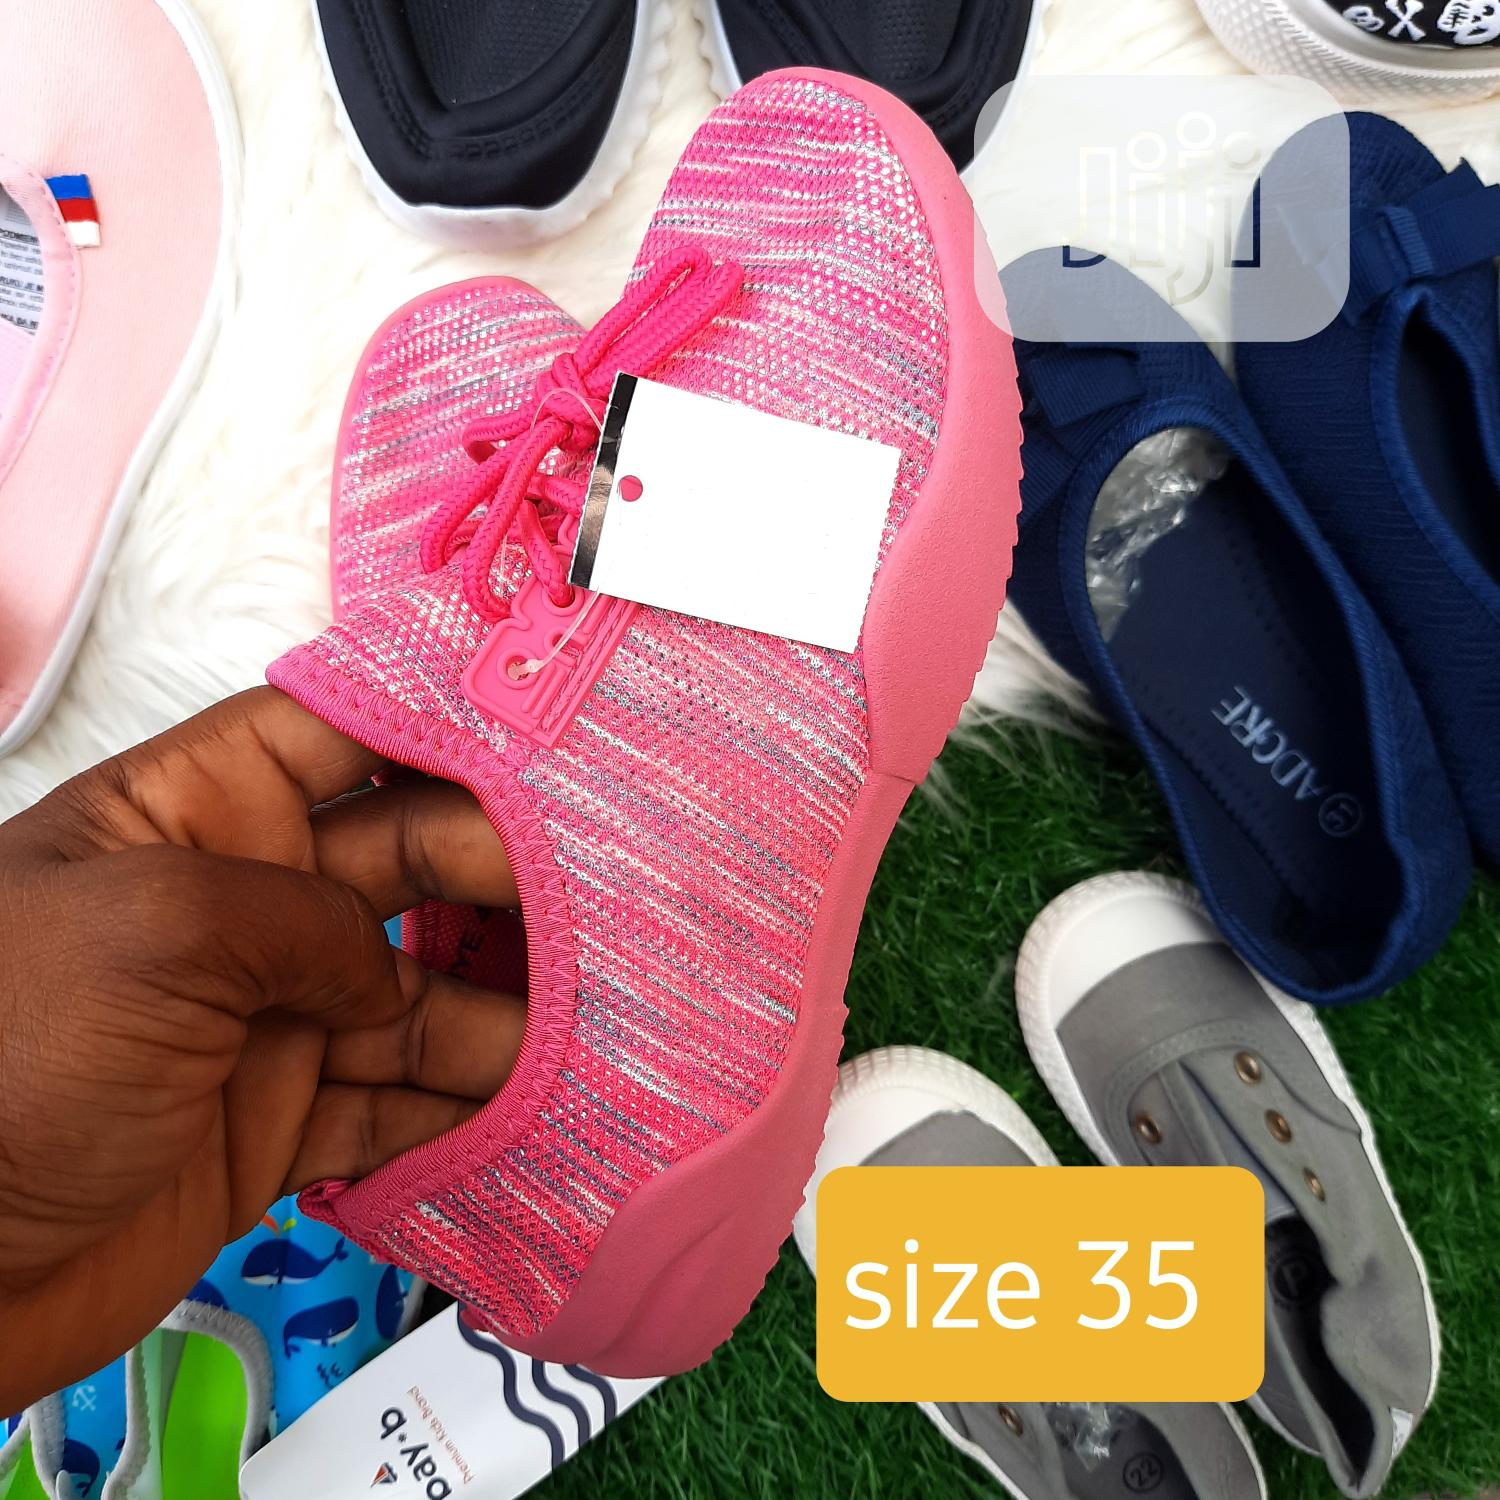 Archive: Brand New Kiddies Sneakers in Size 35